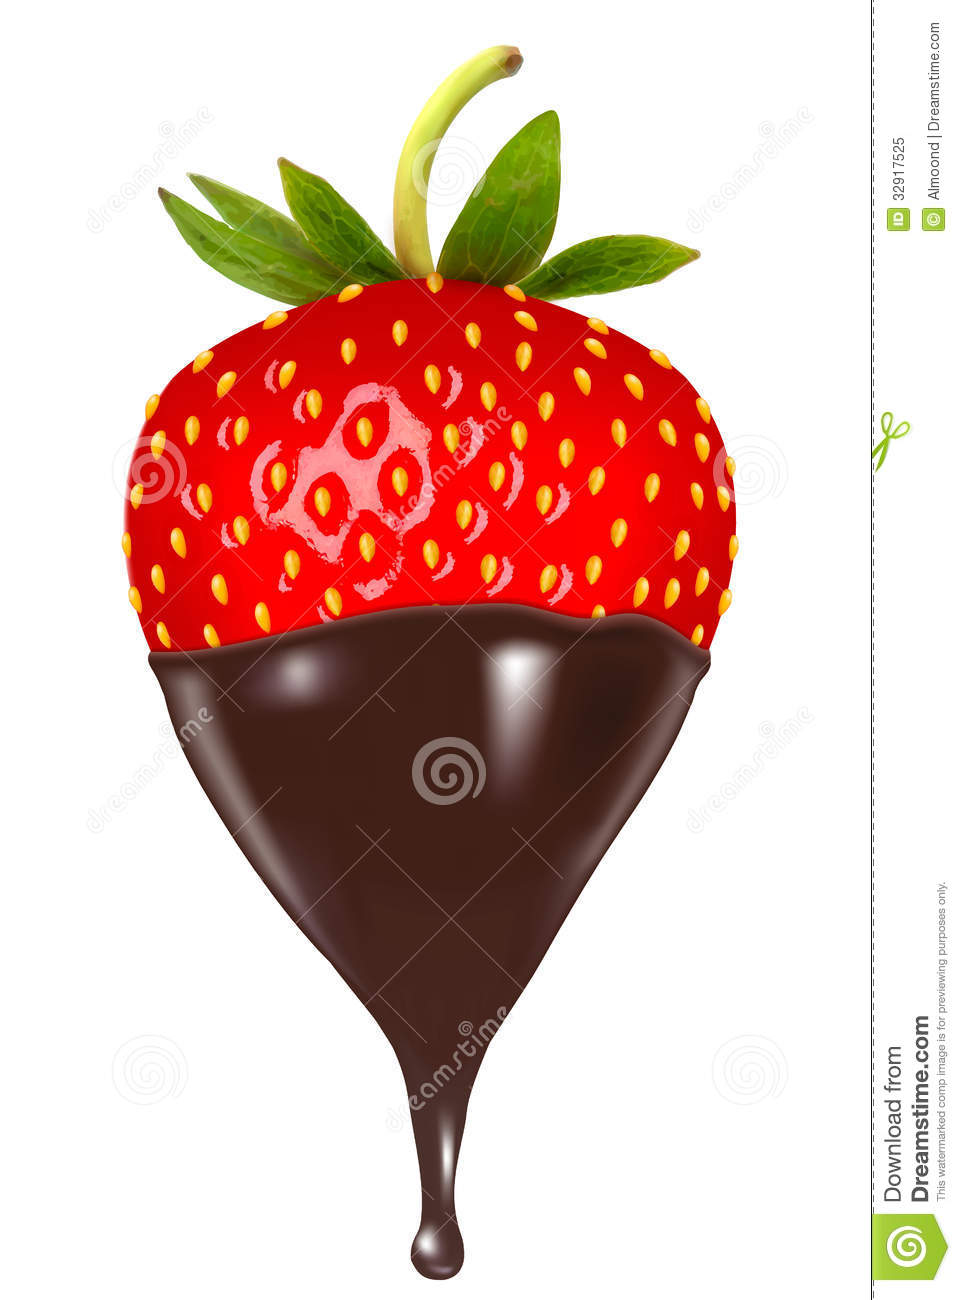 Chocolate Dipped Strawberry. Royalty Free Stock Photo.